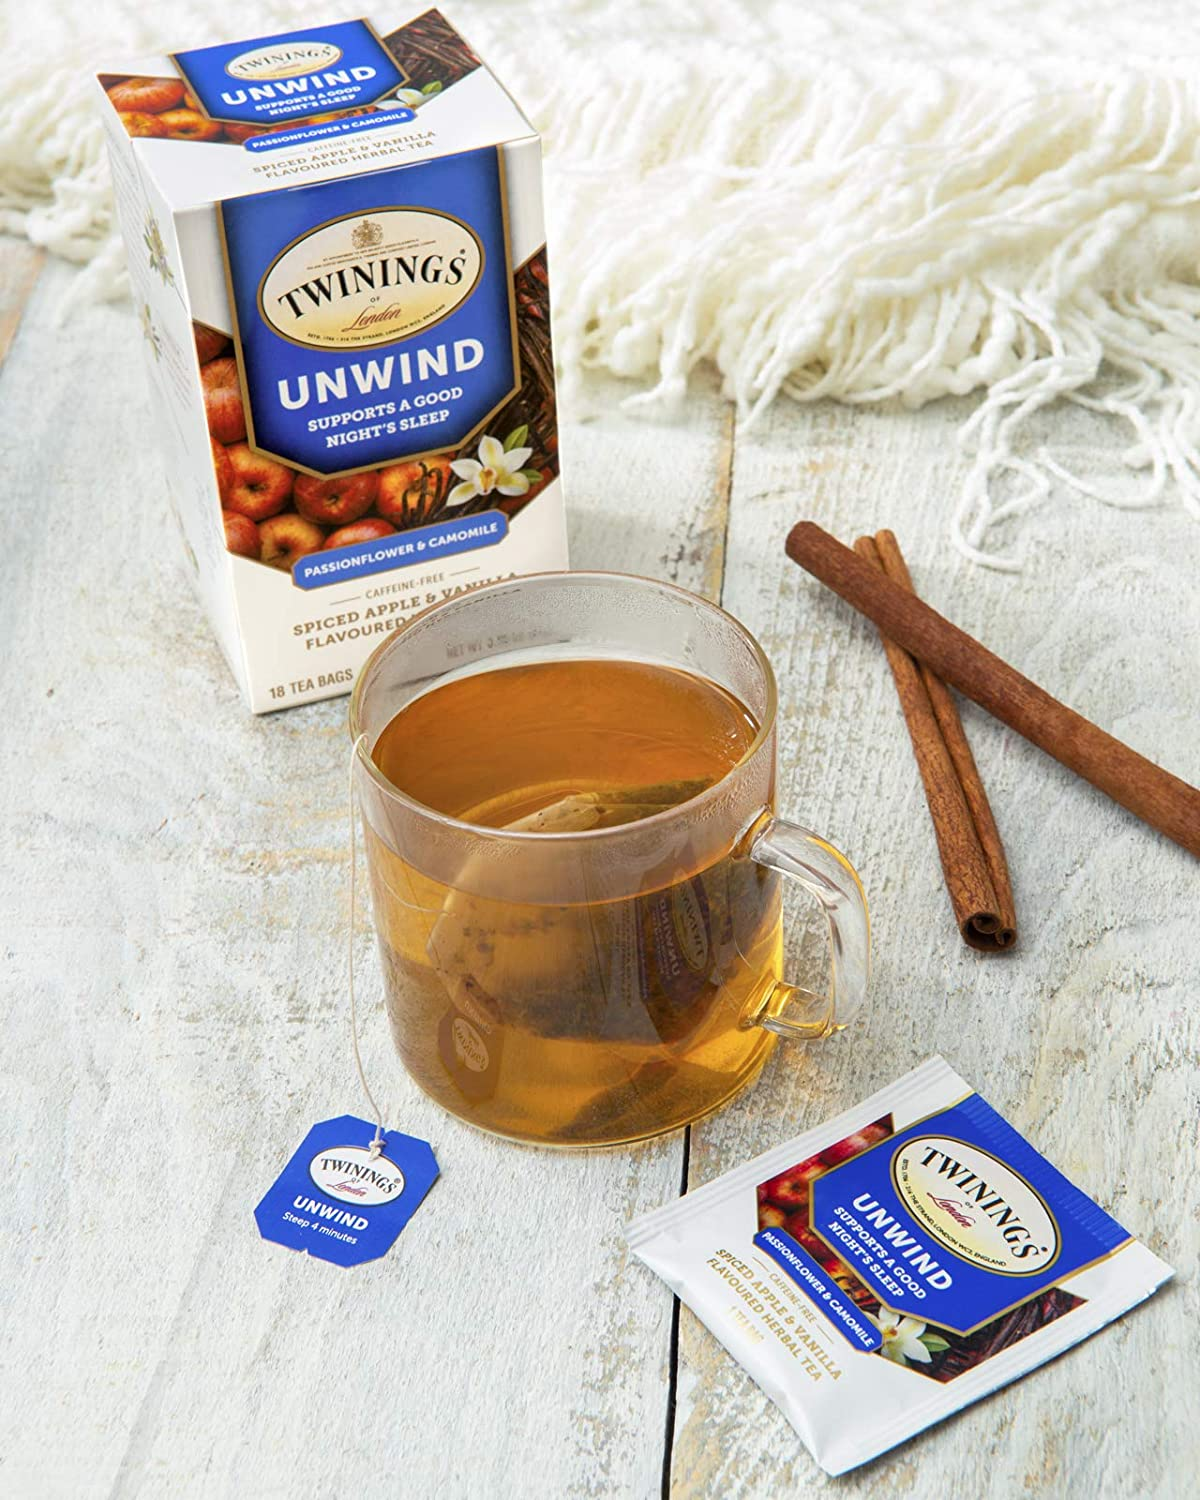 Twinings of London Daily Wellness Tea, Unwind Sleep Supporting Passionflower & Camomile, Spiced Apple & Vanilla, Flavored Herbal Tea